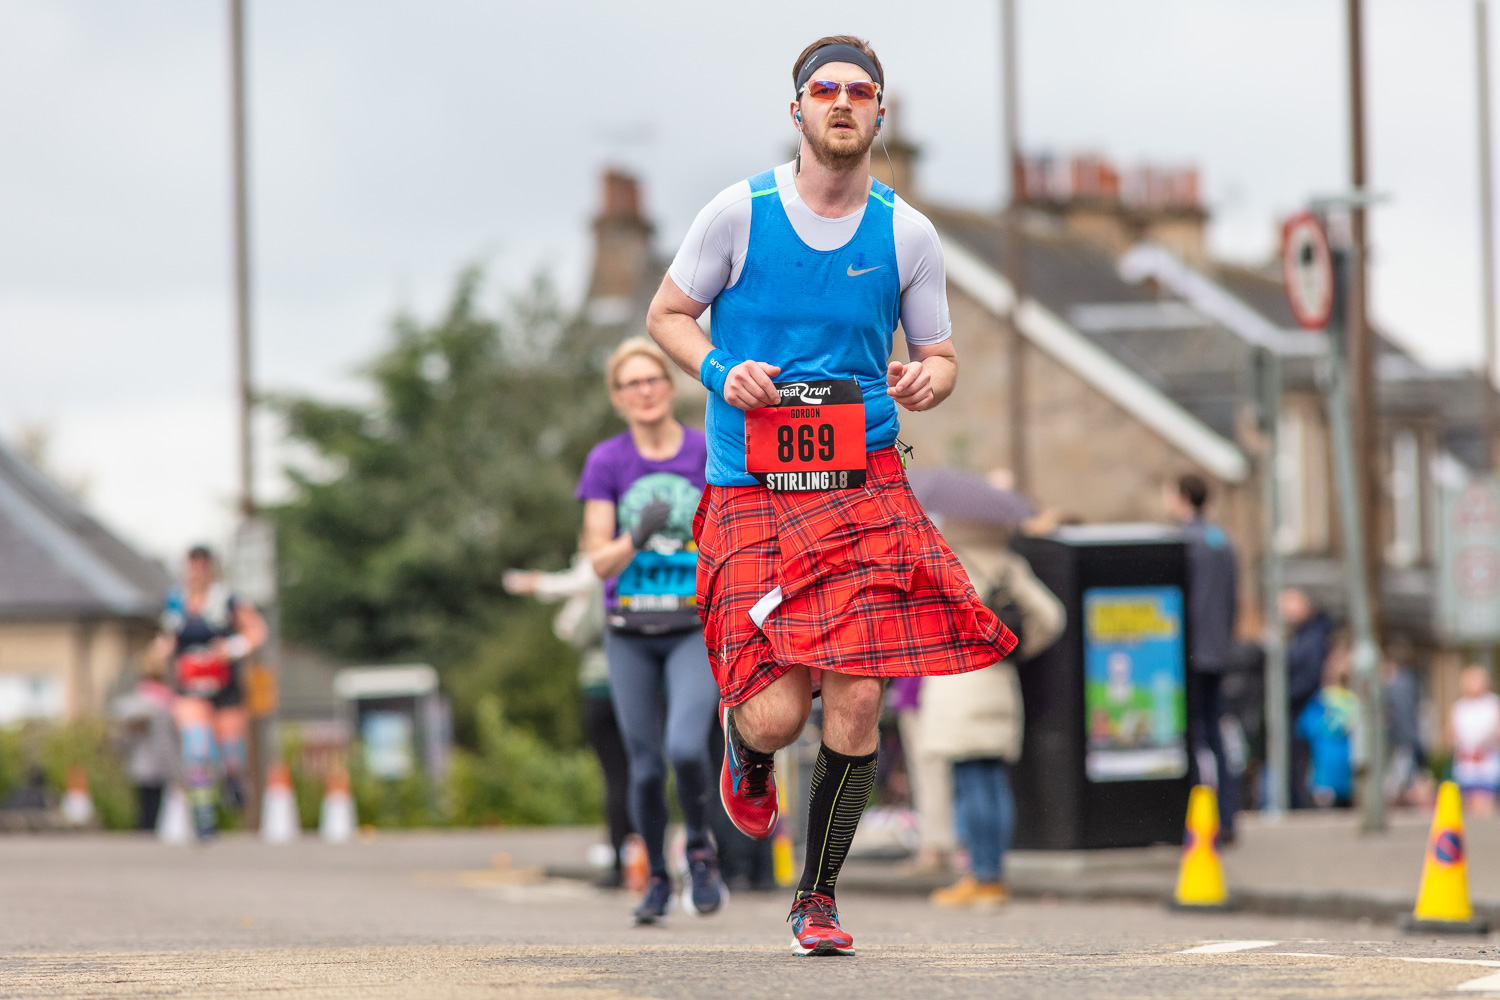 stirling marathon photos 2018.jpg